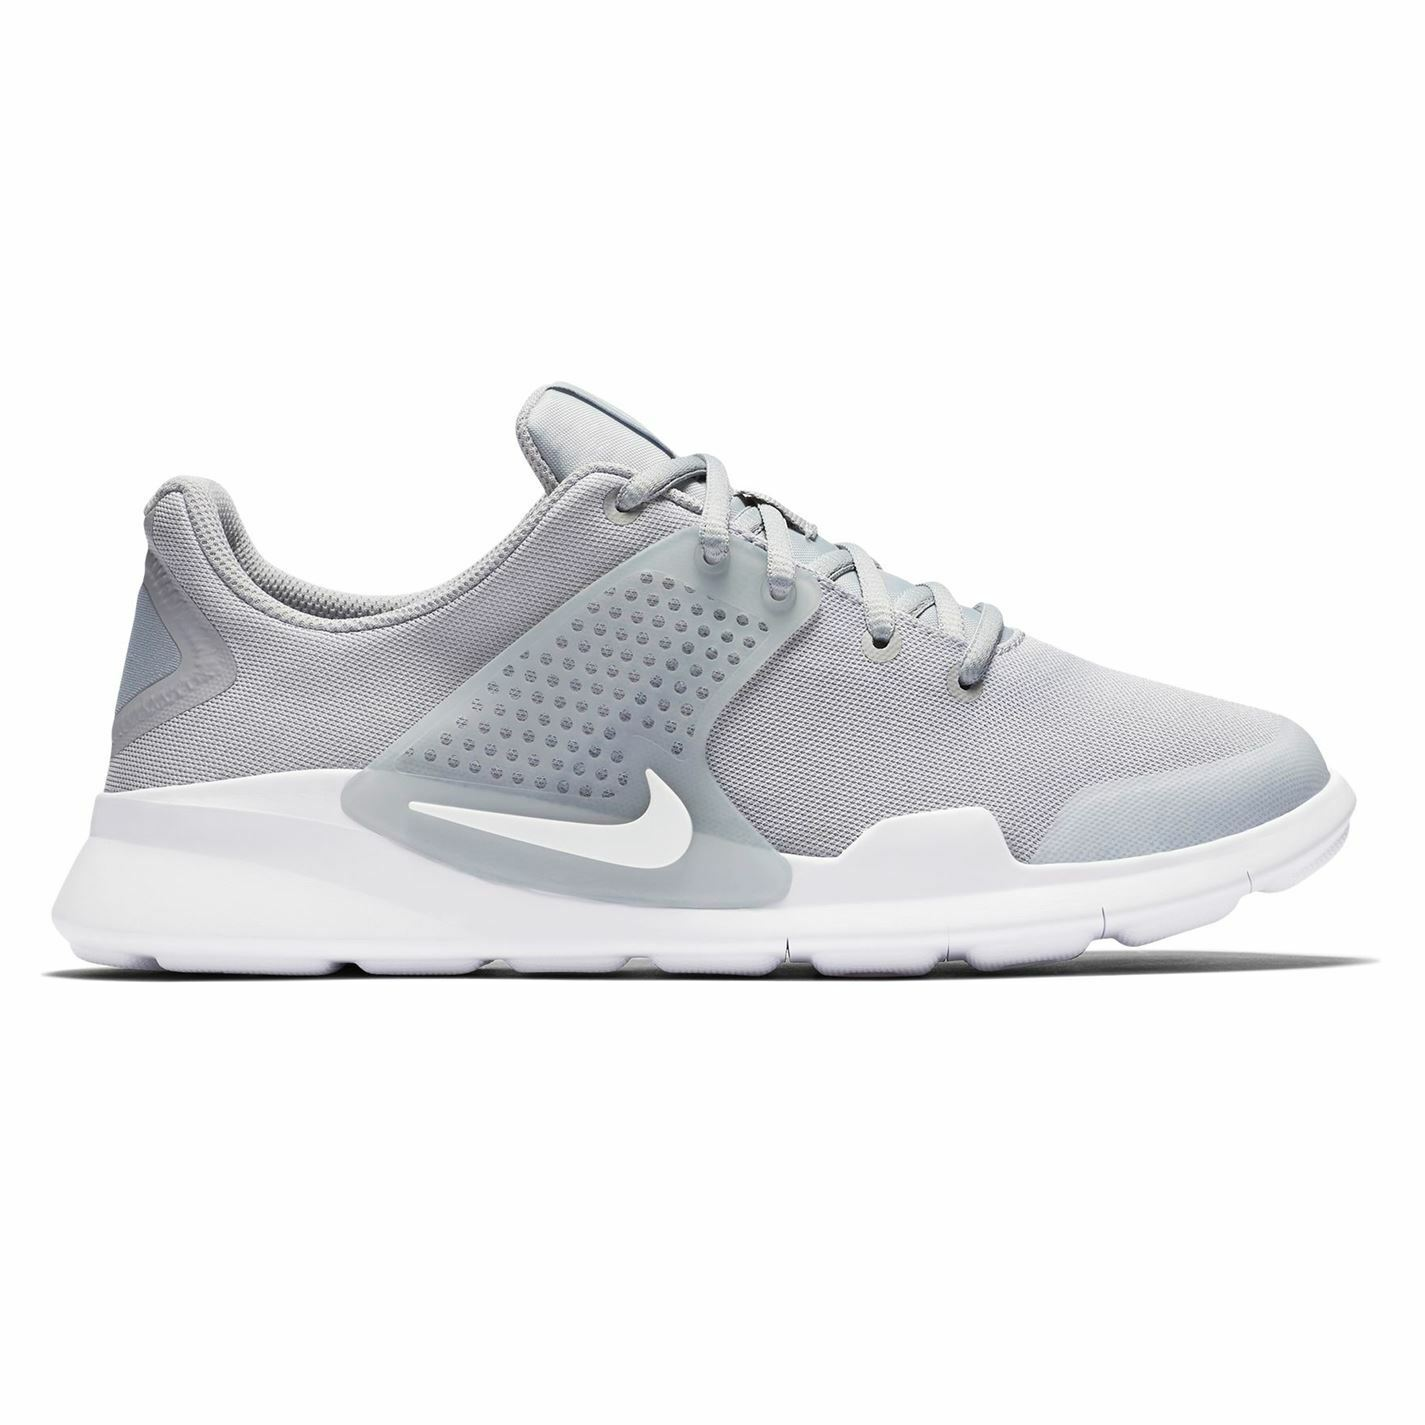 Nike Arrowz Trainers Mens Grey White Sports shoes Sneakers